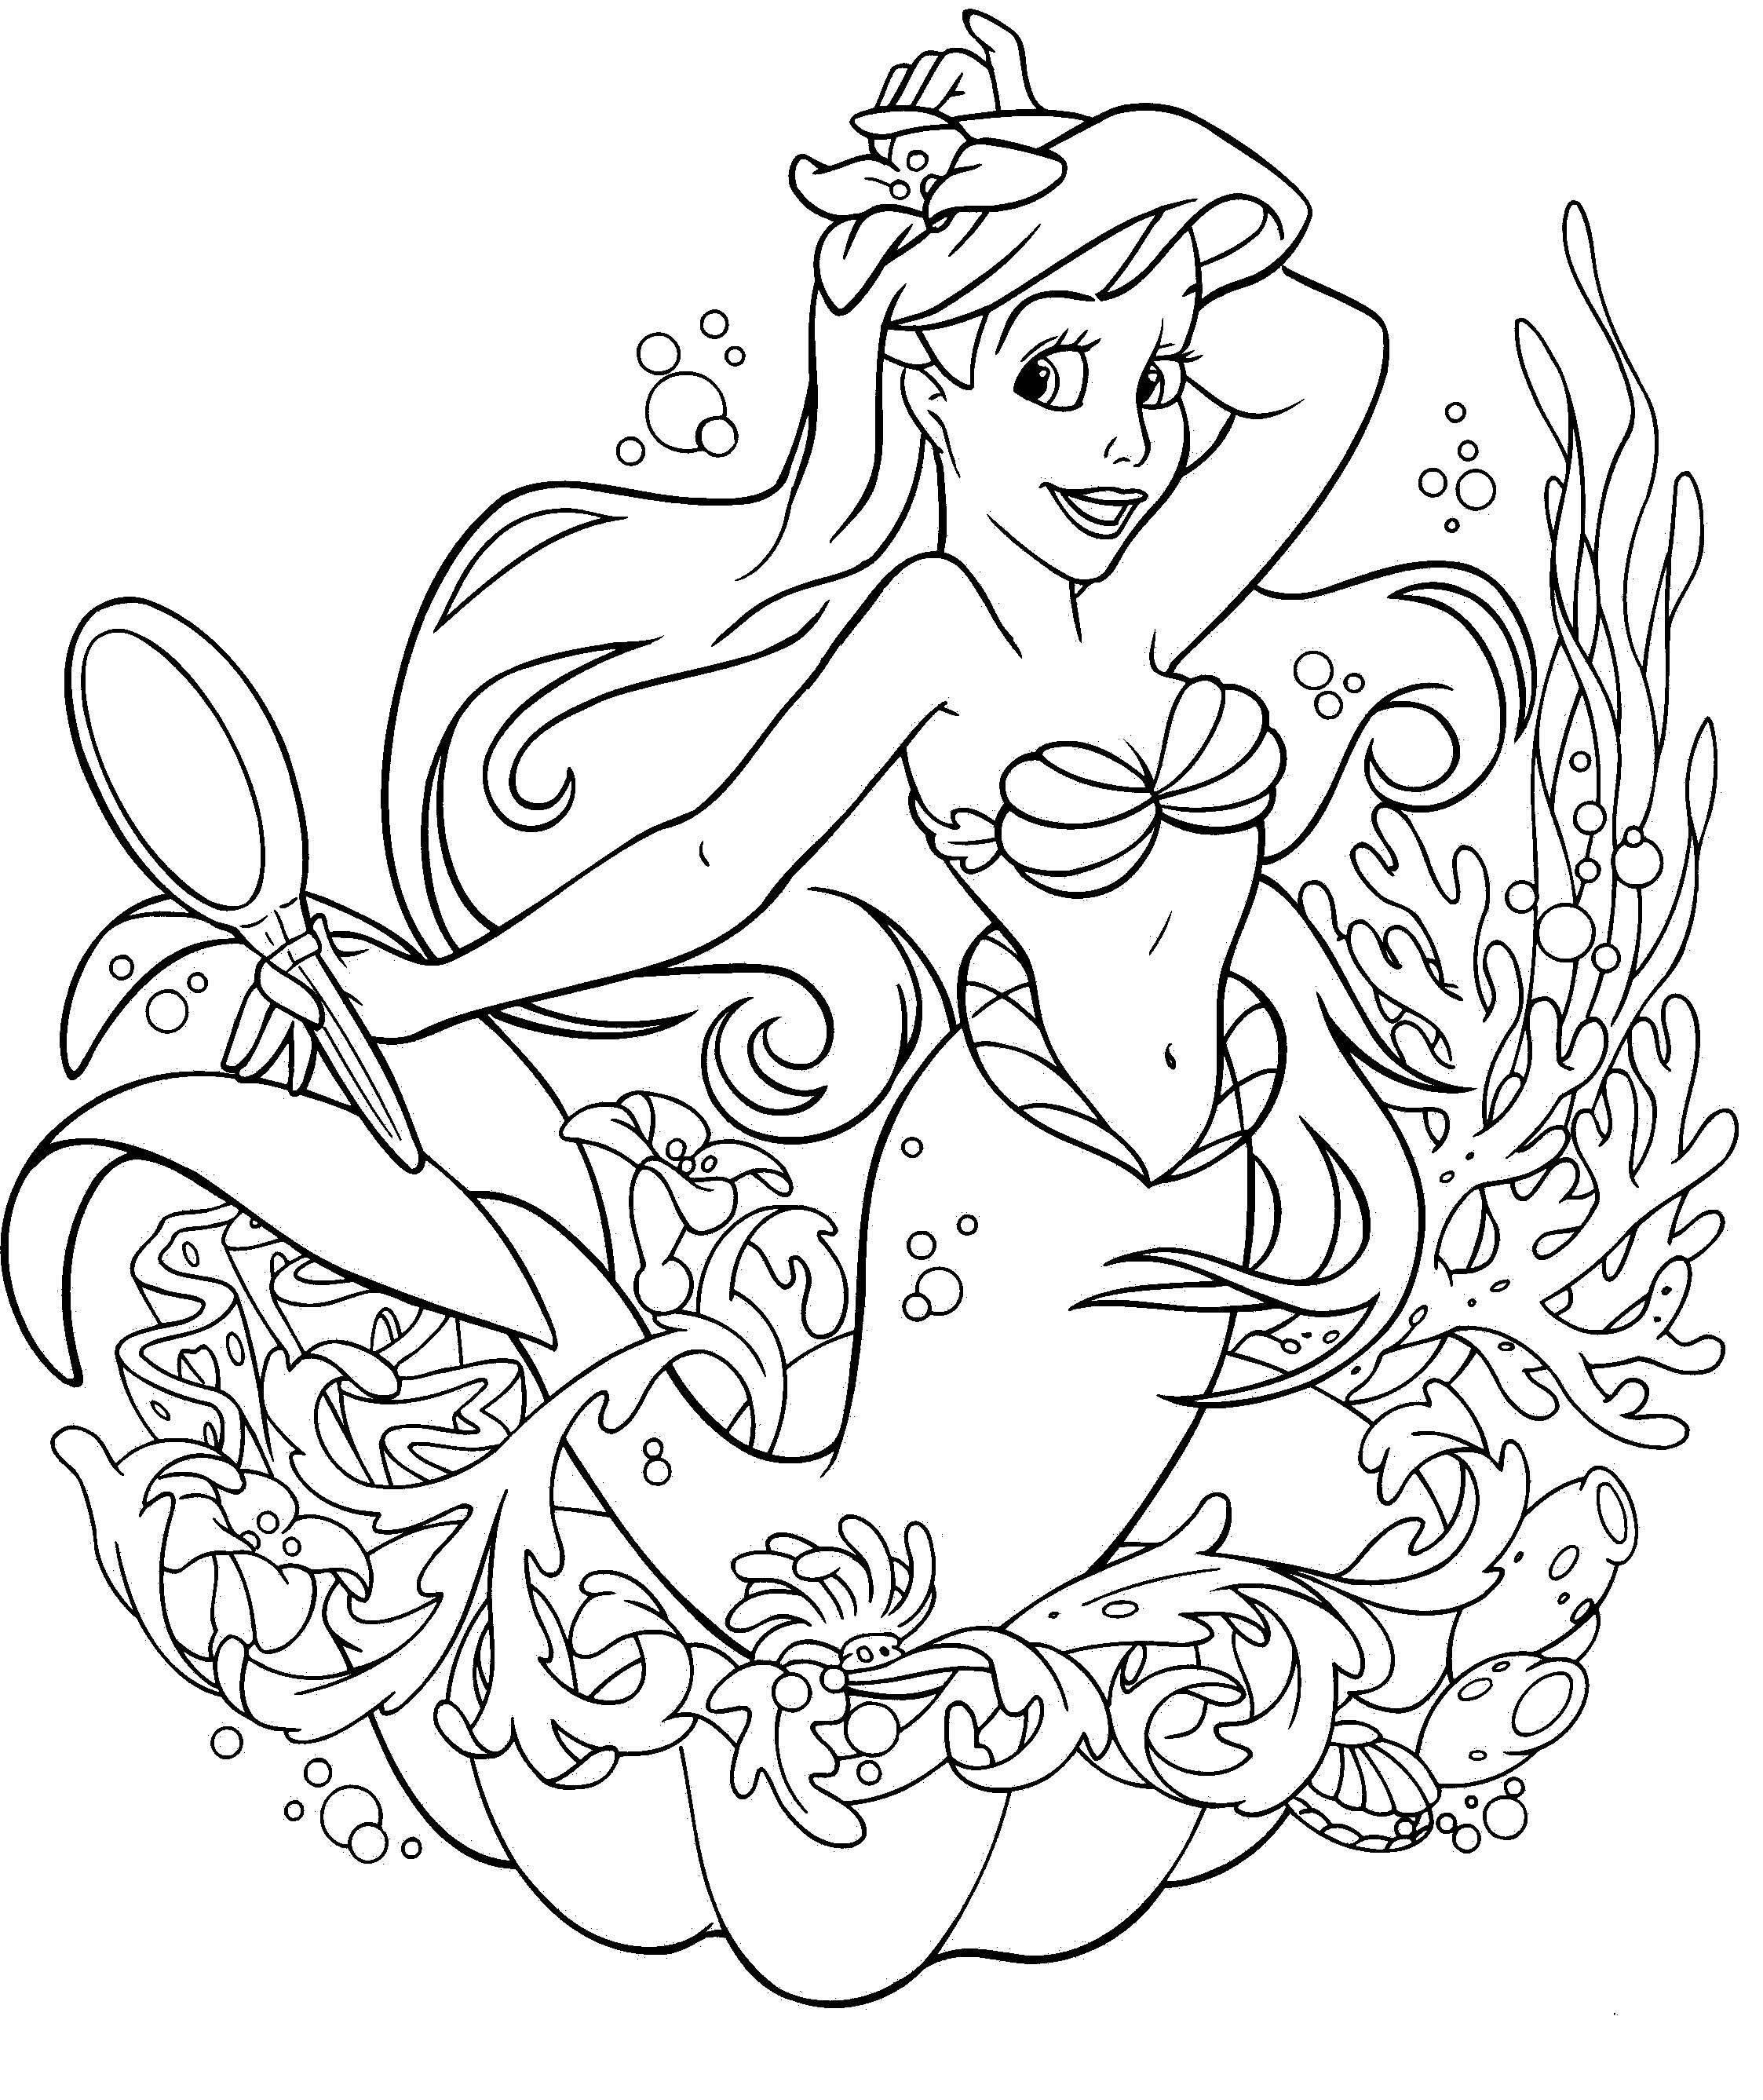 Princess Ariel Hold Glass Coloring Pages Ariel Coloring Pages Mermaid Coloring Book Free Disney Coloring Pages